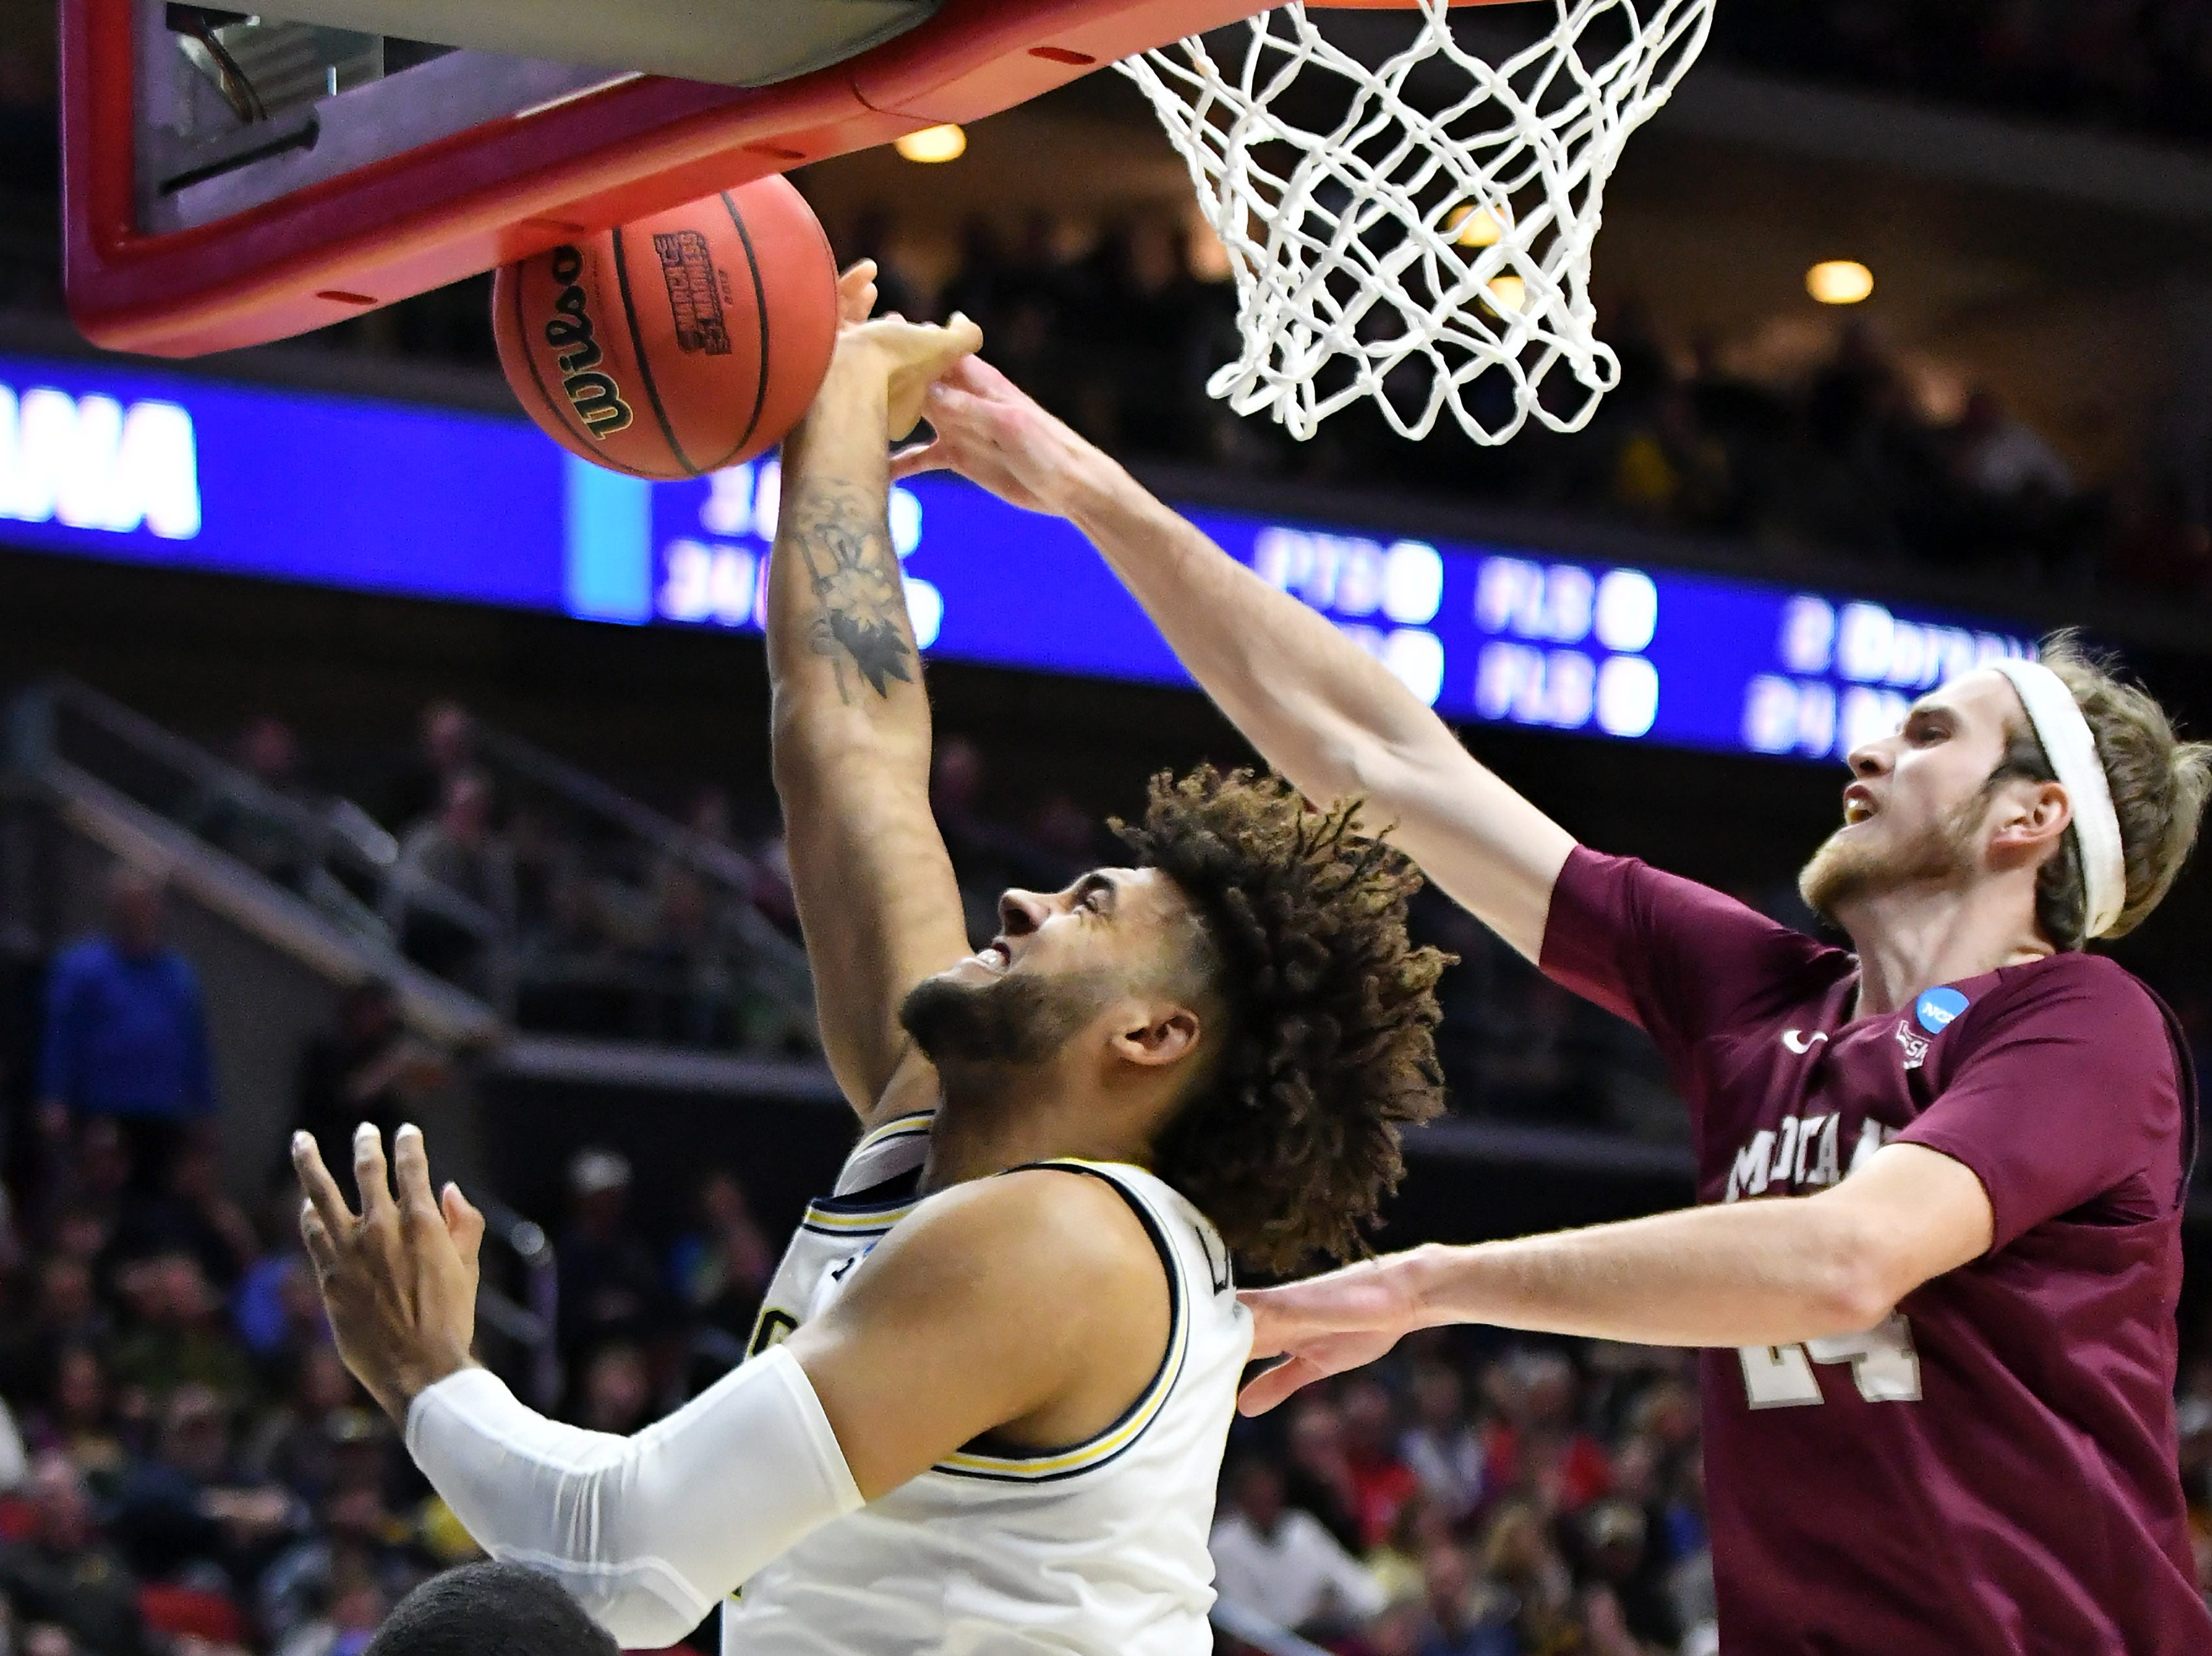 Montana guard Bobby Moorehead, right, fouls Michigan forward Isaiah Livers in the first half.  Michigan vs Montana for Round 1 of the NCAA Tournament at Wells Fargo Arena in Des Moines, Iowa.